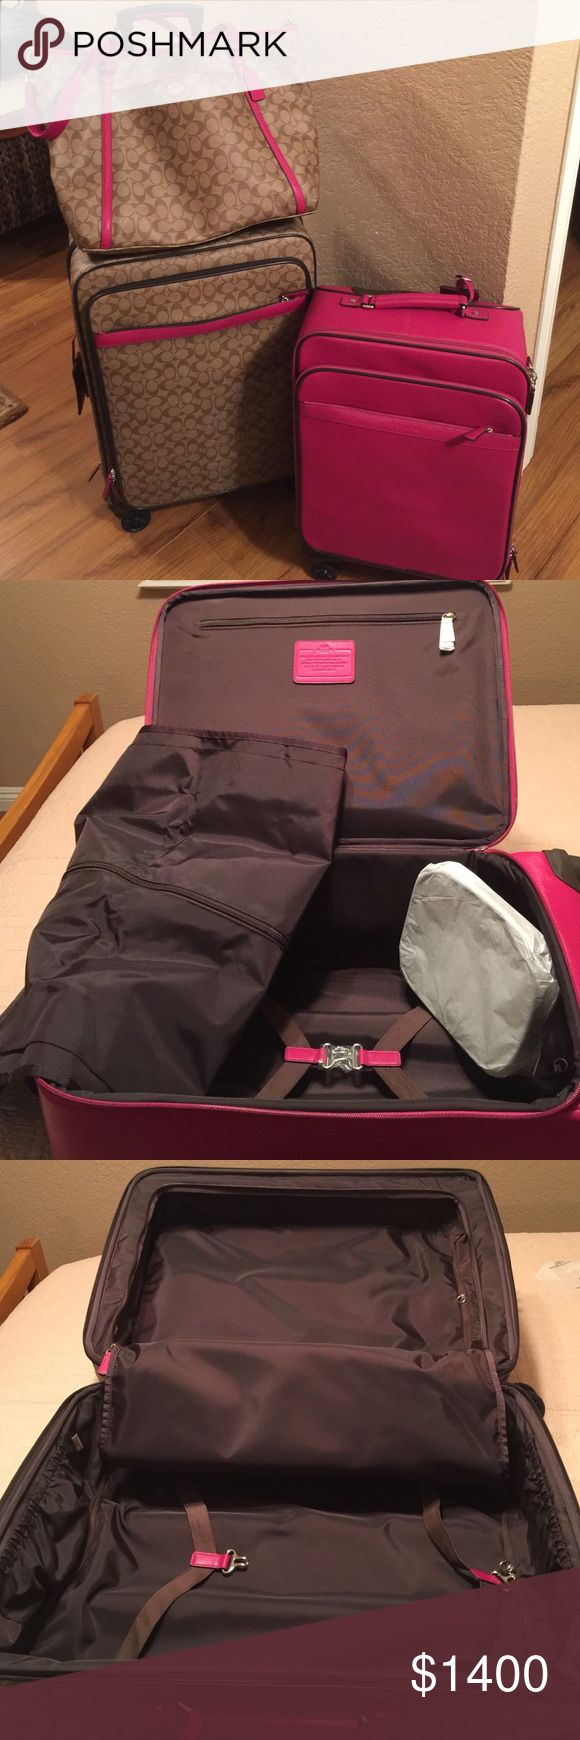 Coach luggage set Brand new  3 piece coach luggage set Brown with hot pink trim Coach Bags Travel Bags